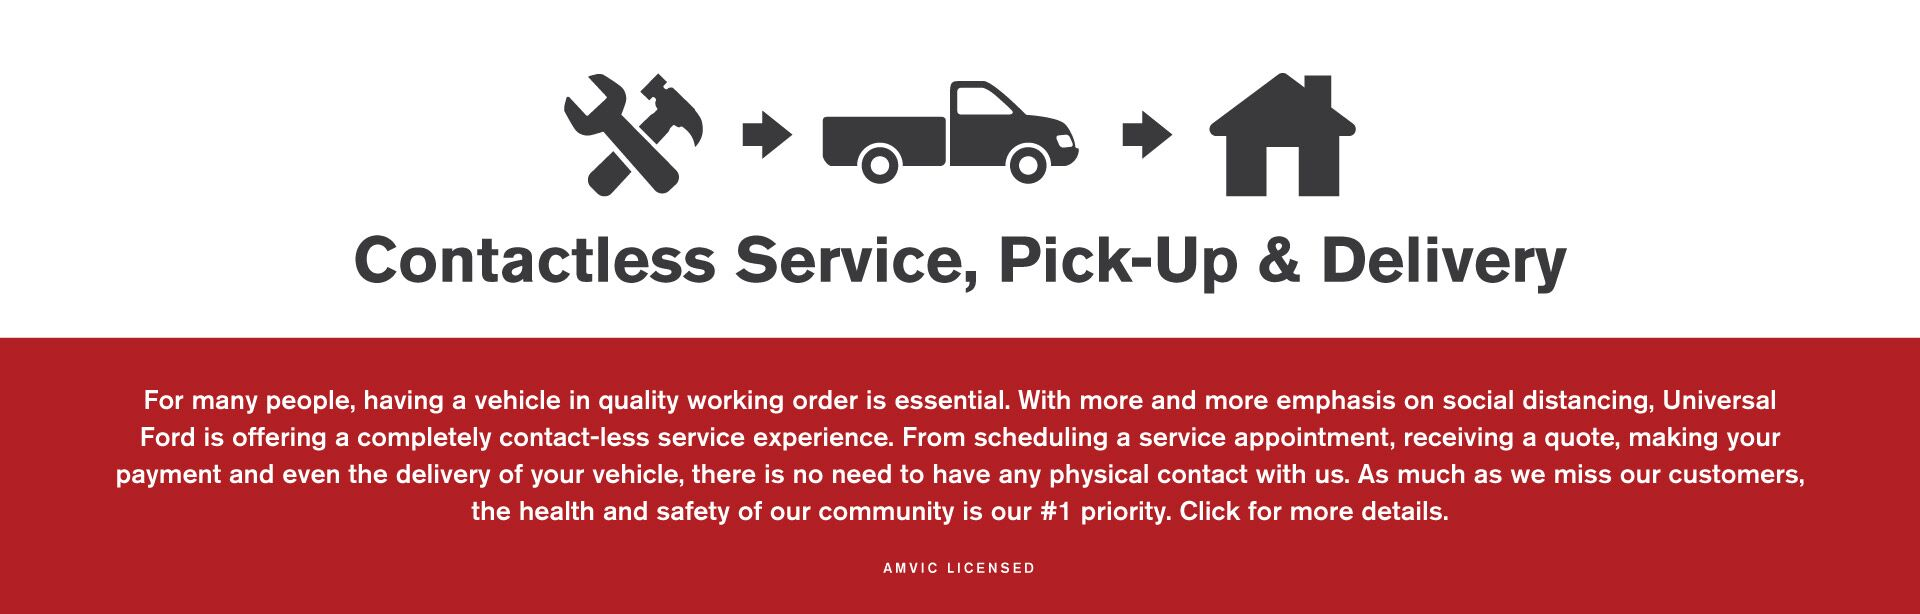 Contactless Service, Pick-Up & Delivery